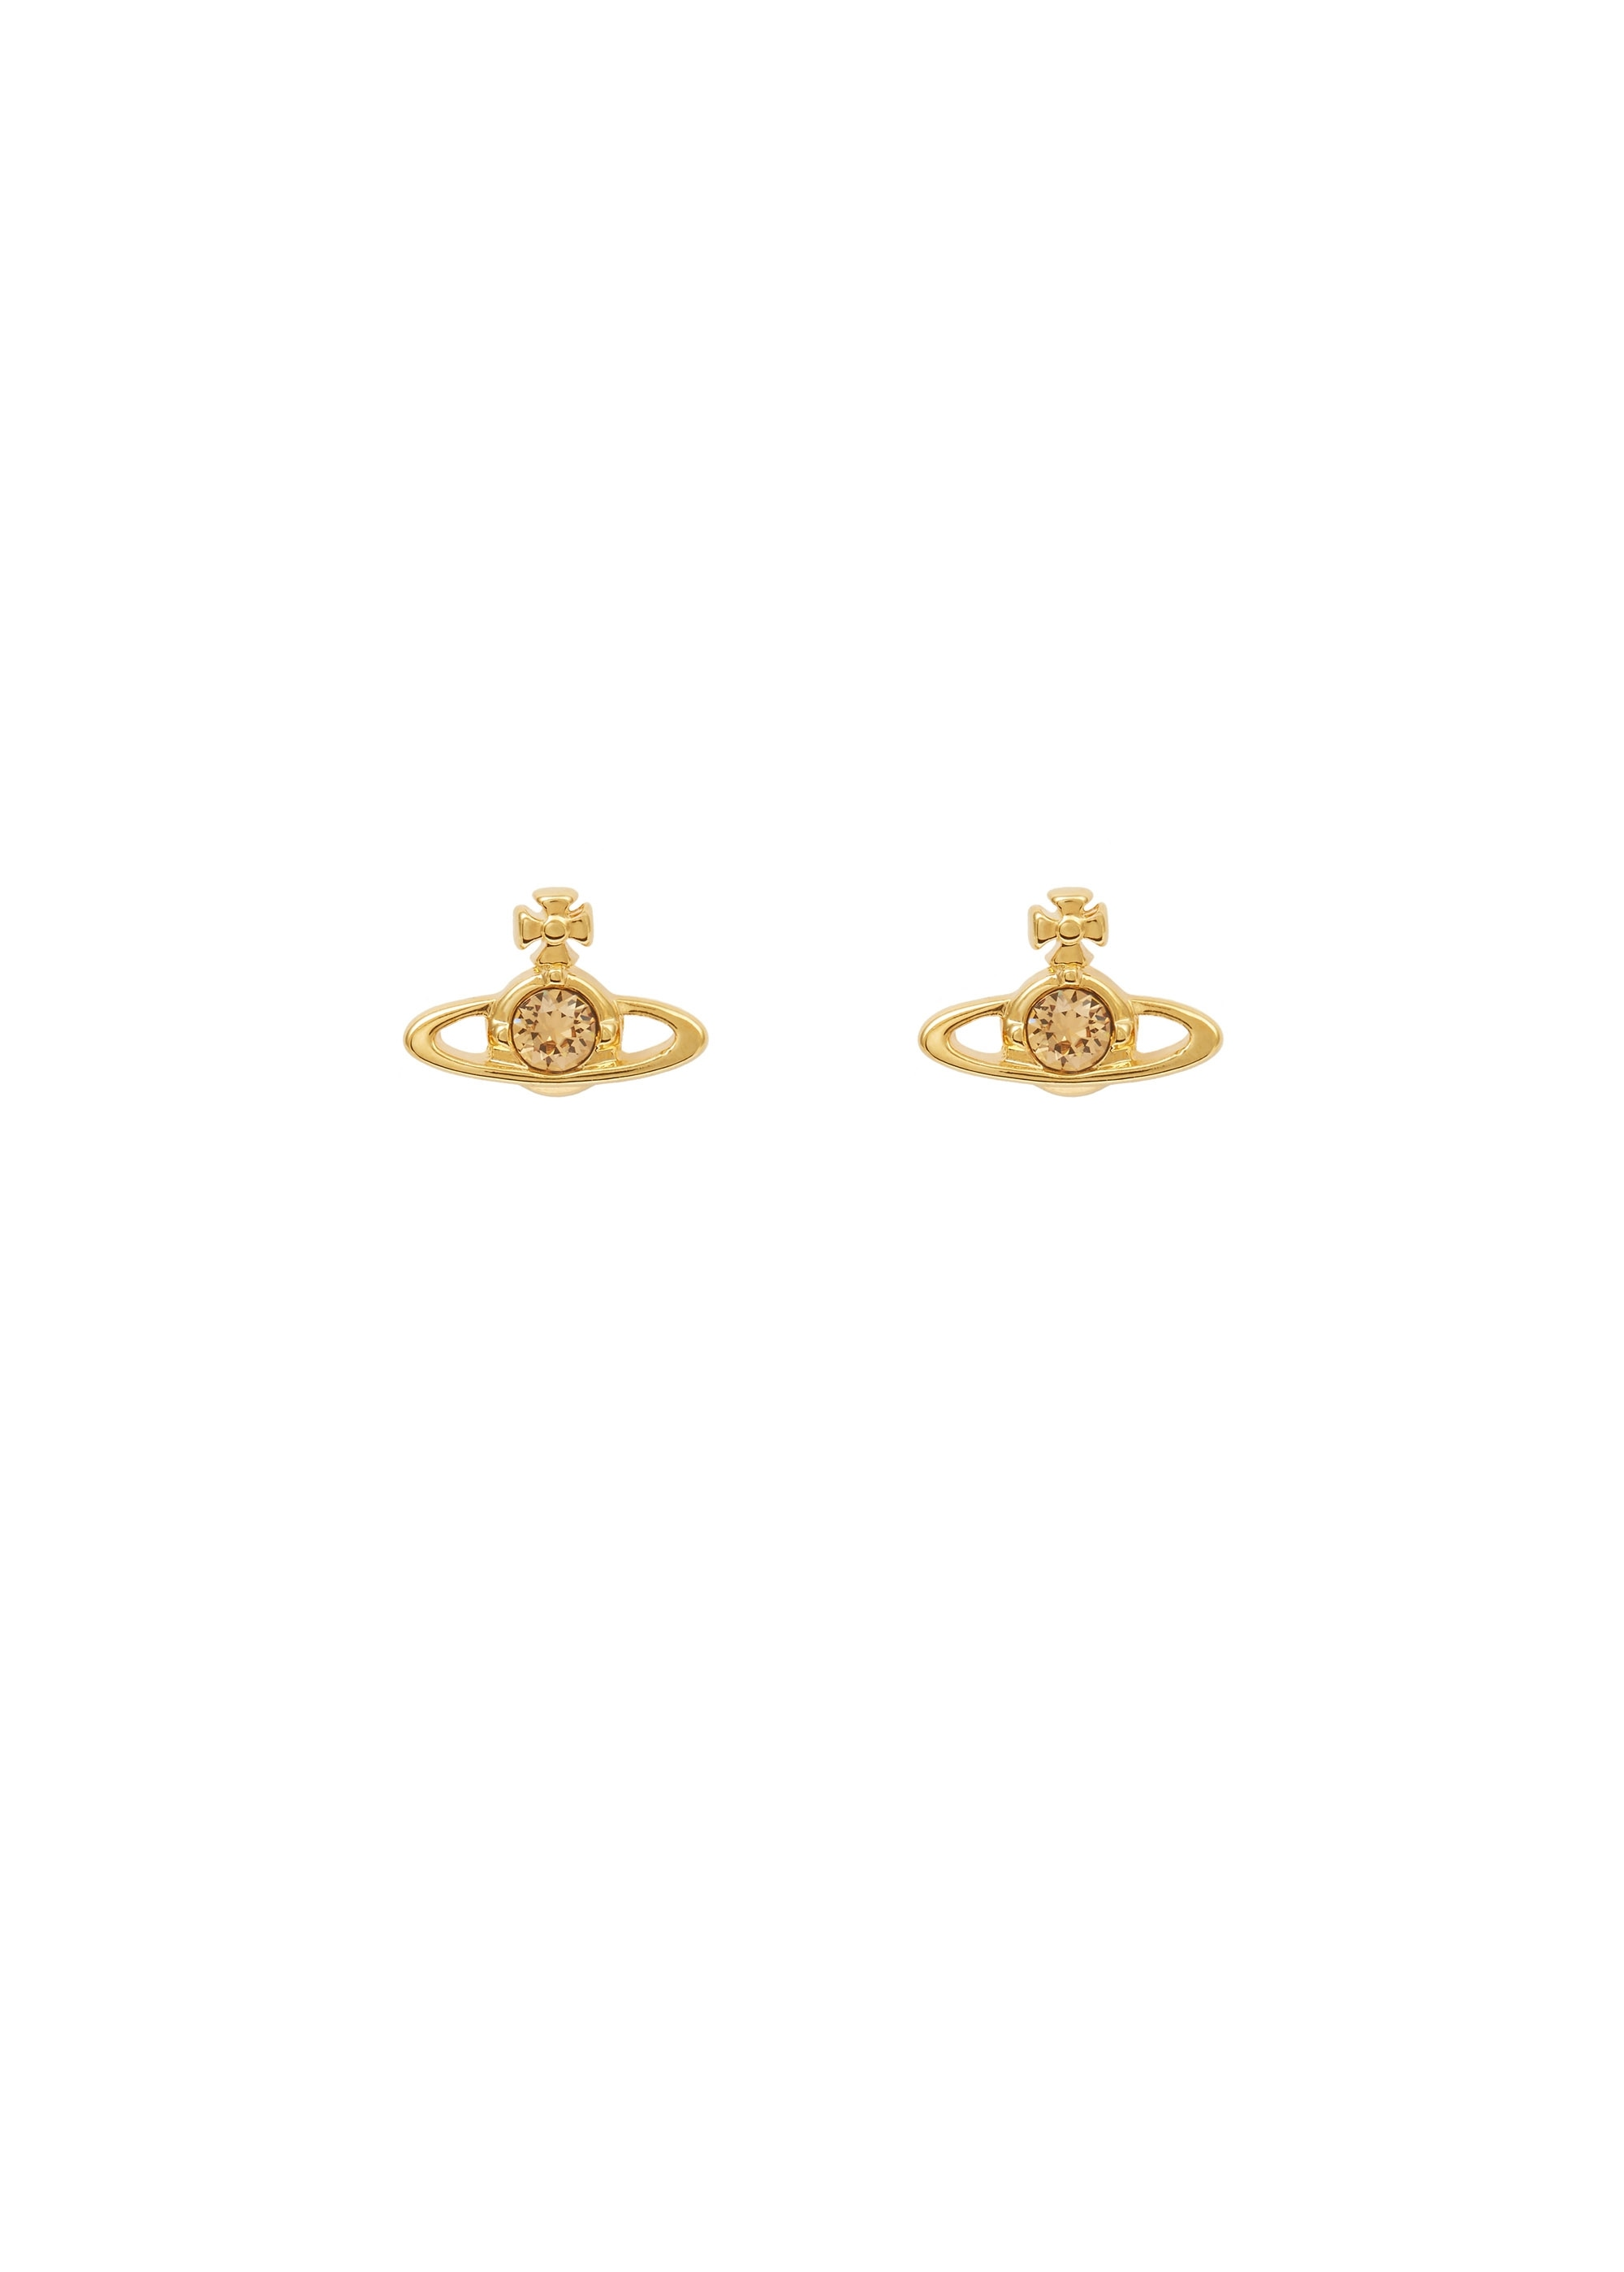 cut de great drop larger of princess stud l view beers diamond solitaire earrings designs